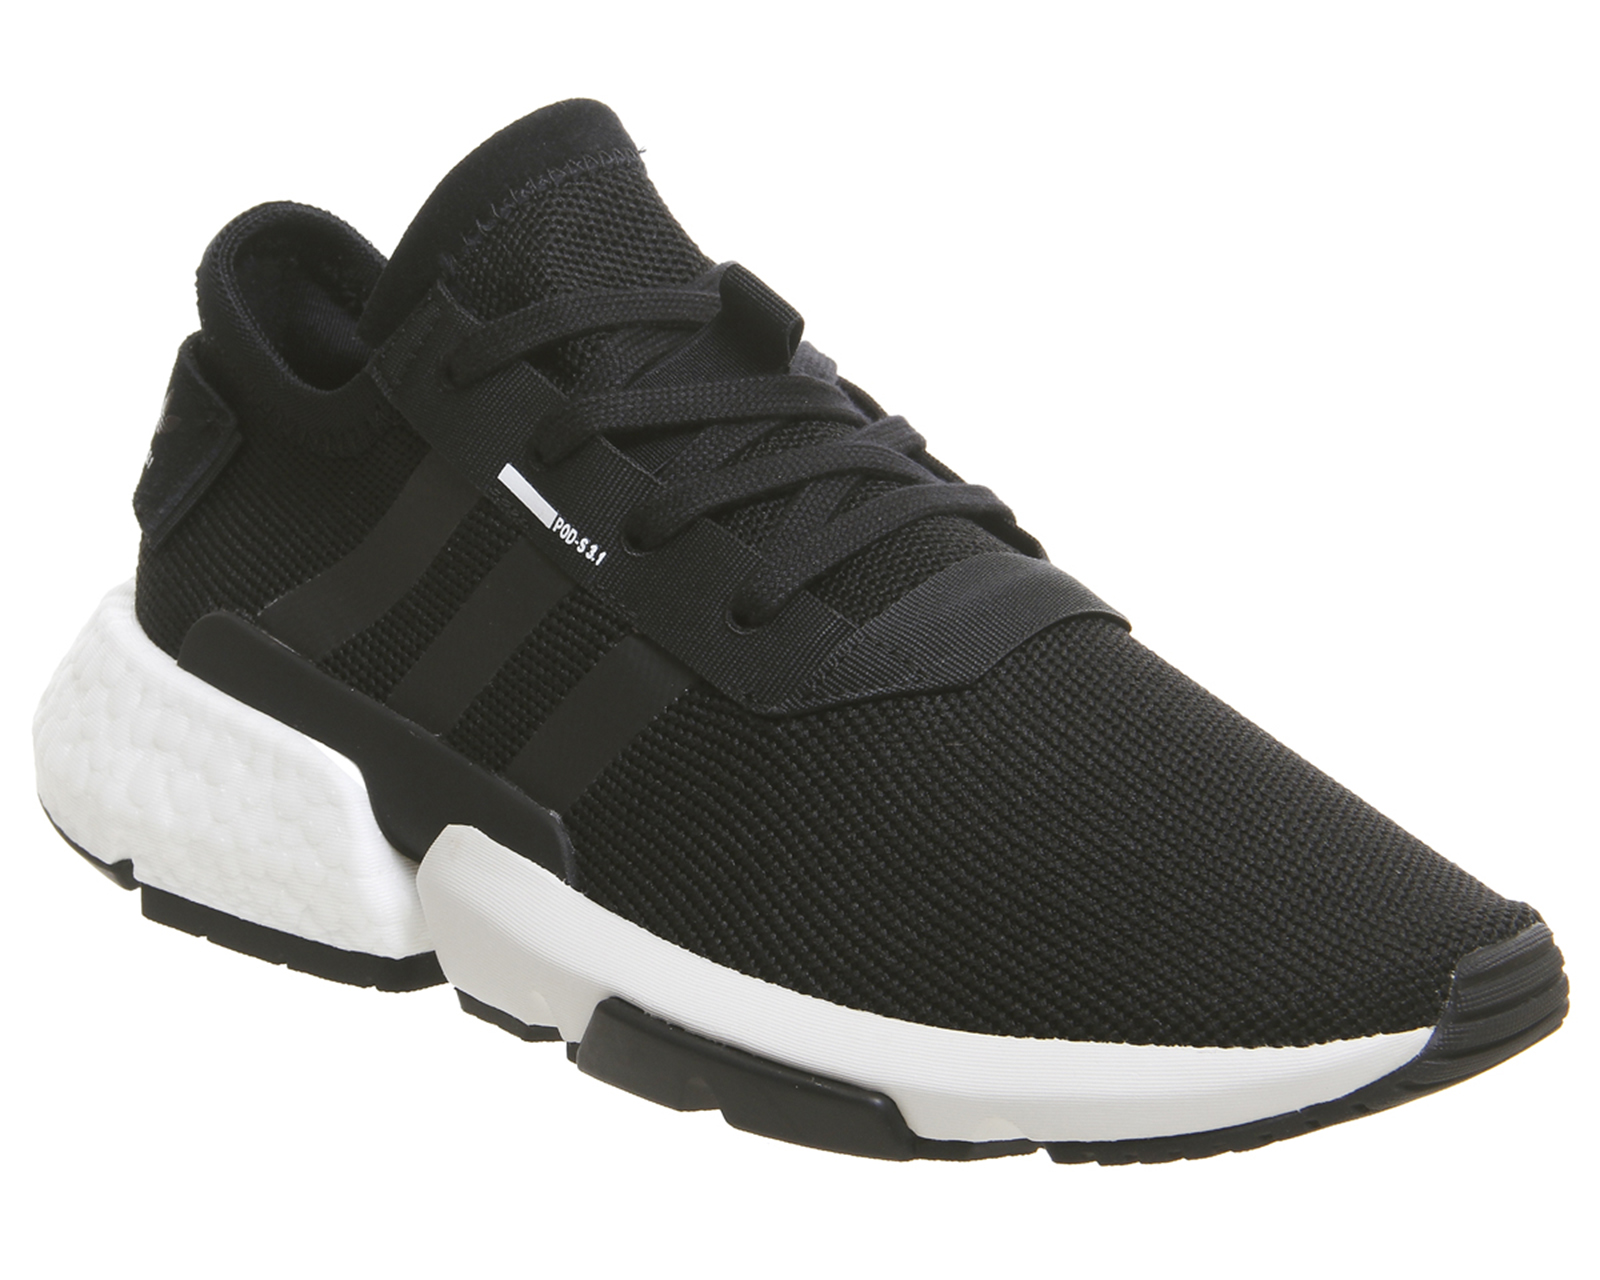 b520a7eccf21 Sentinel Adidas Pod S3.1 Trainers Black White Trainers Shoes